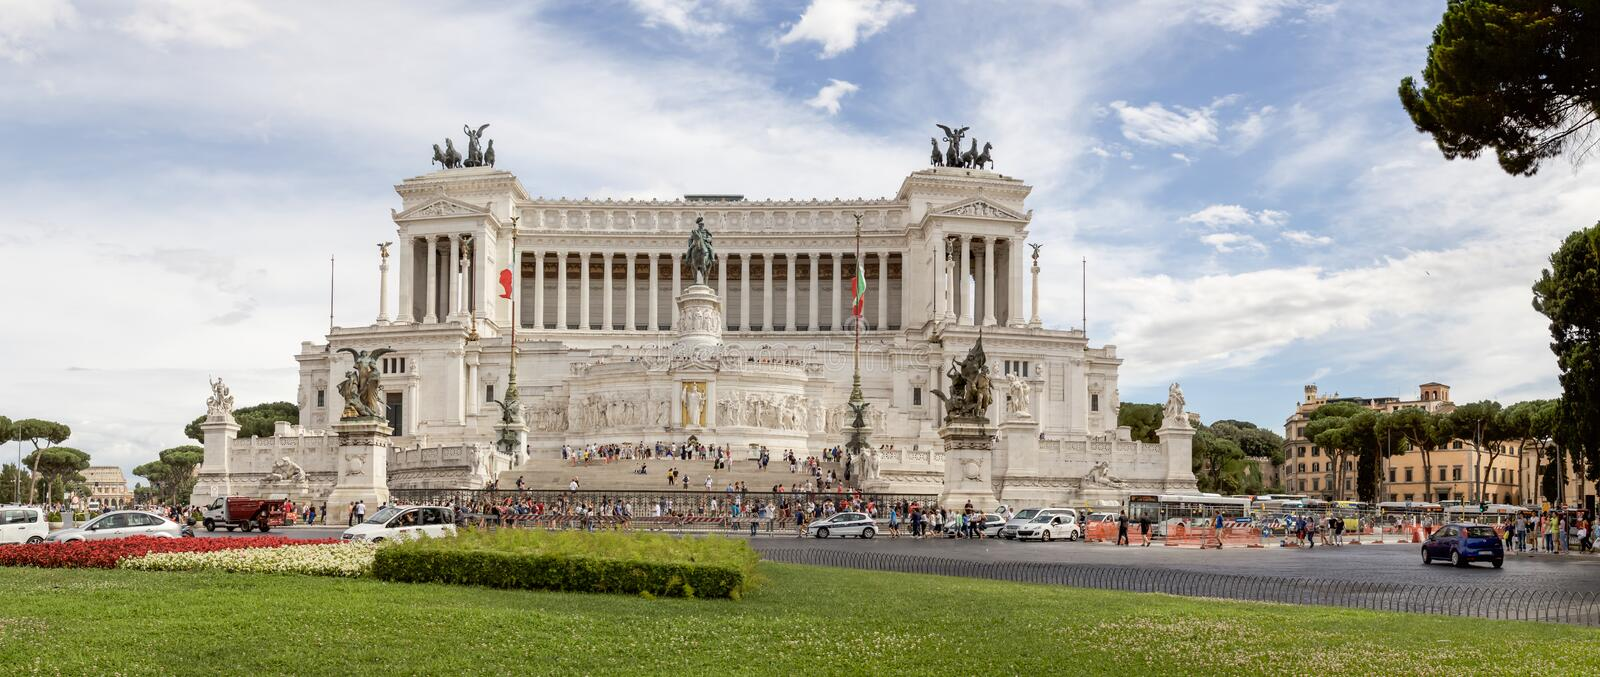 Download Panorama Of Piazza Venezia In Rome Editorial Stock Photo - Image: 83700548